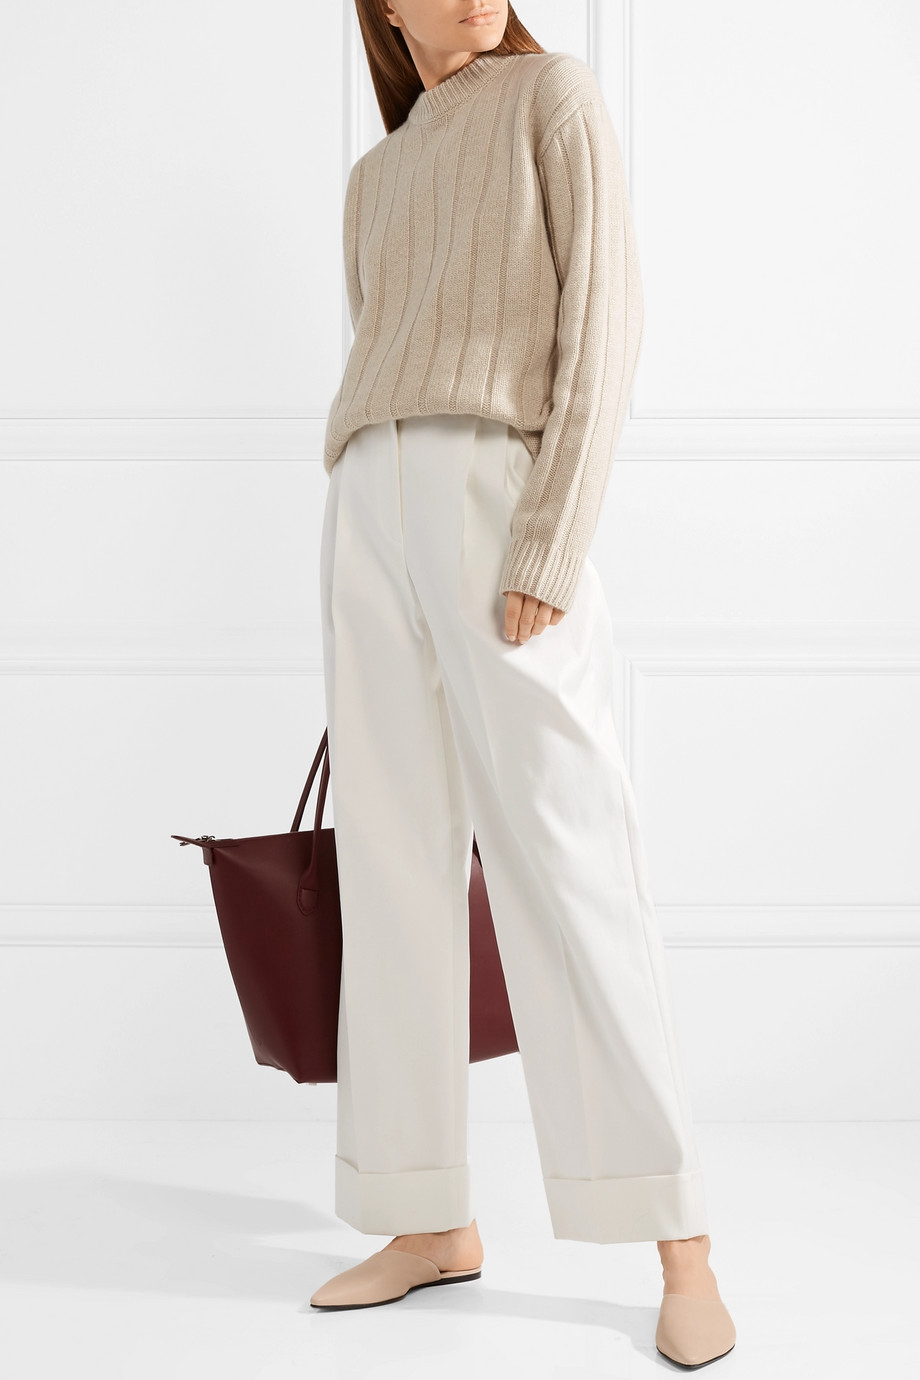 ribbed sweater + wide-leg pants  Image  via